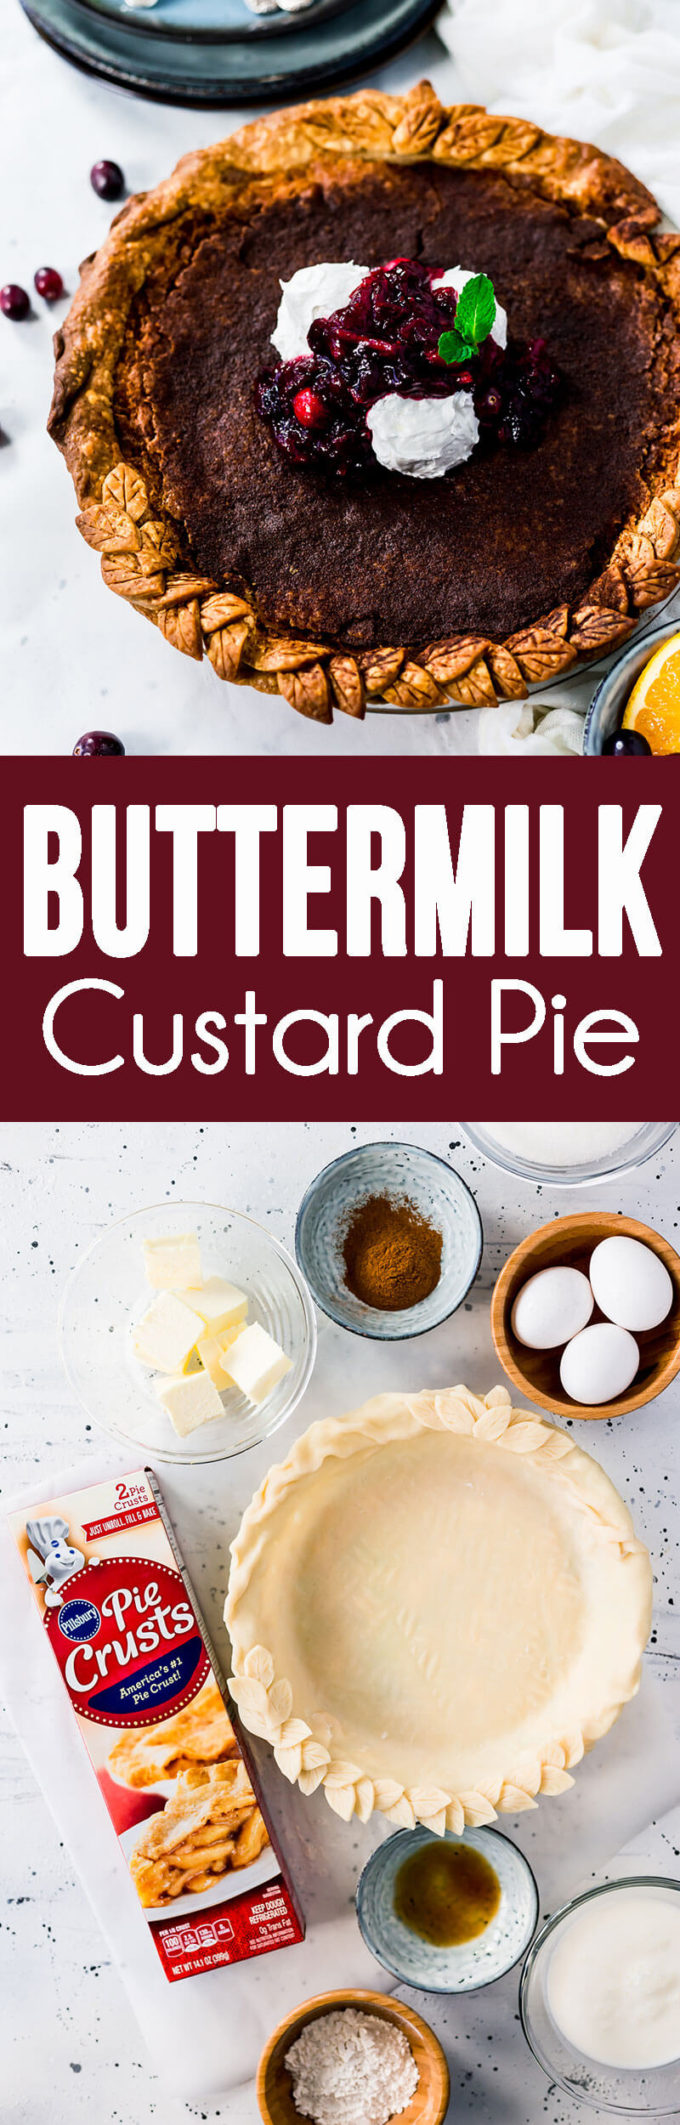 Buttermilk Pie a family classic and favorite custard pie or vinegar pie